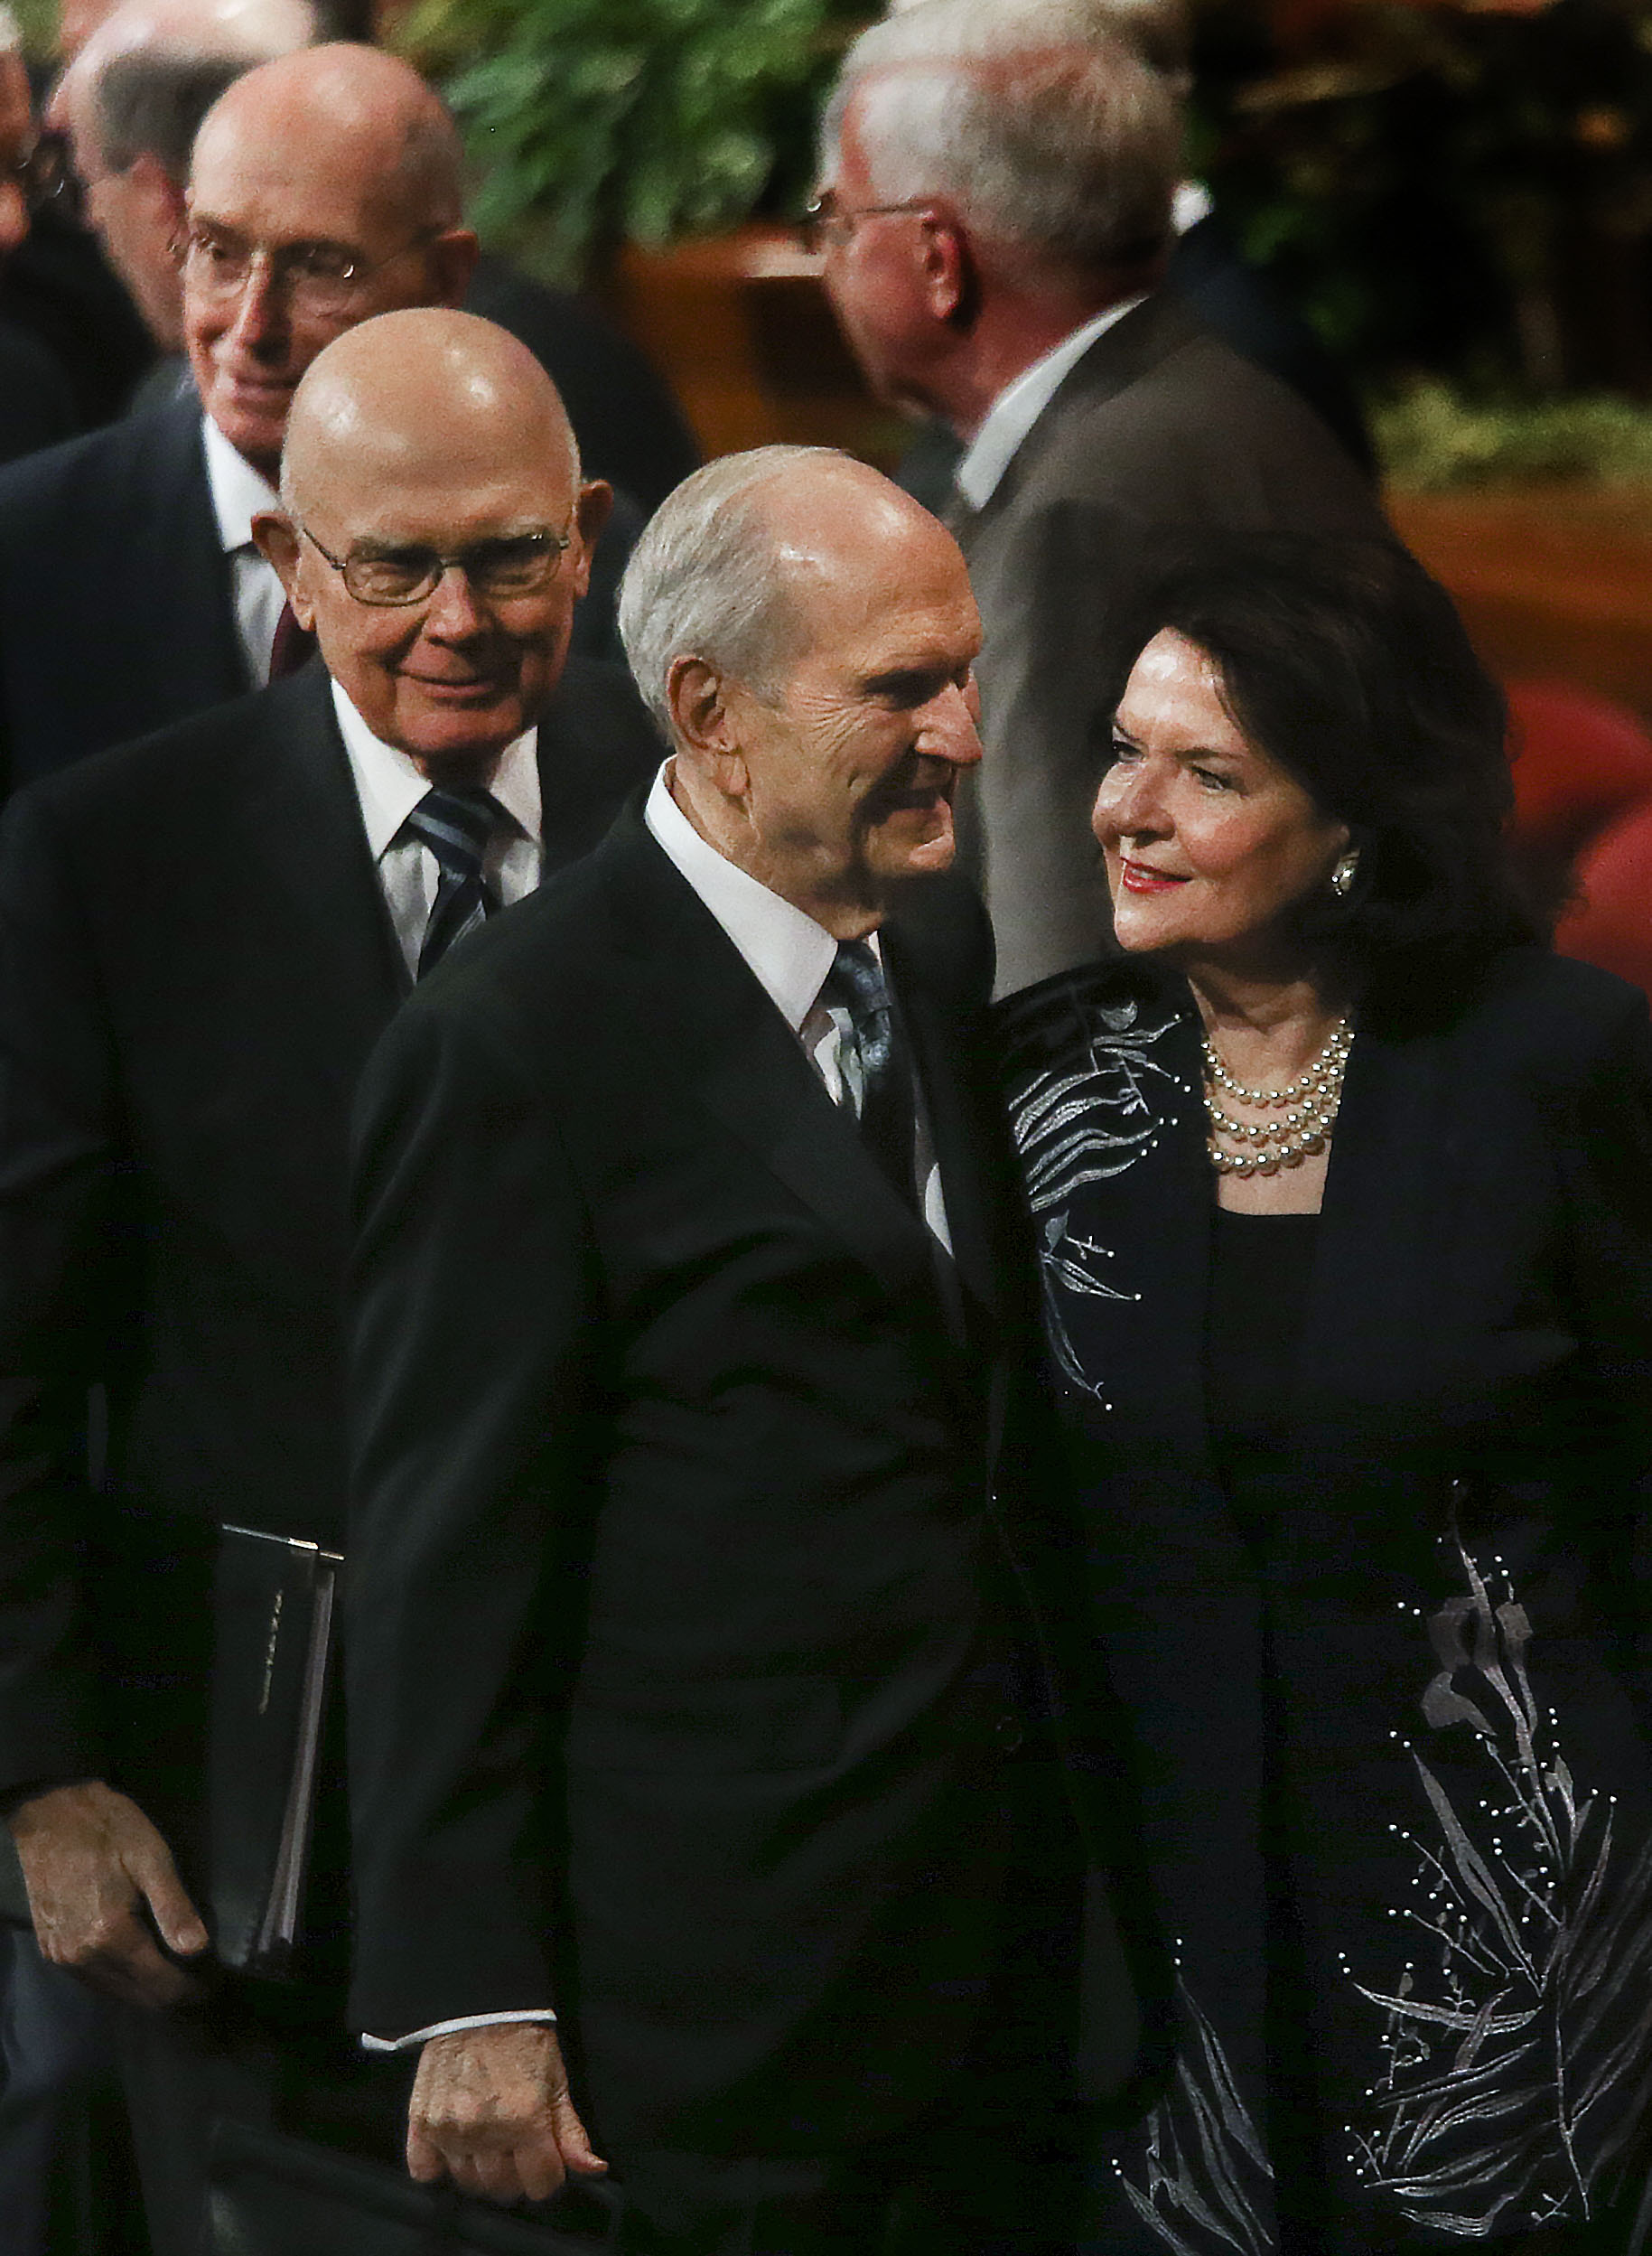 President Russell M. Nelson and his wife Sister Wendy Nelson leave the Sunday afternoon session of the 189th Semiannual General Conference of The Church of Jesus Christ of Latter-day Saints in Salt Lake City on Sunday, Oct. 6, 2019. Following President Nelson and his wife is President Dallin H. Oaks, first counselor in the First Presidency, left, and President Henry B. Eyring, second counselor in the First Presidency.